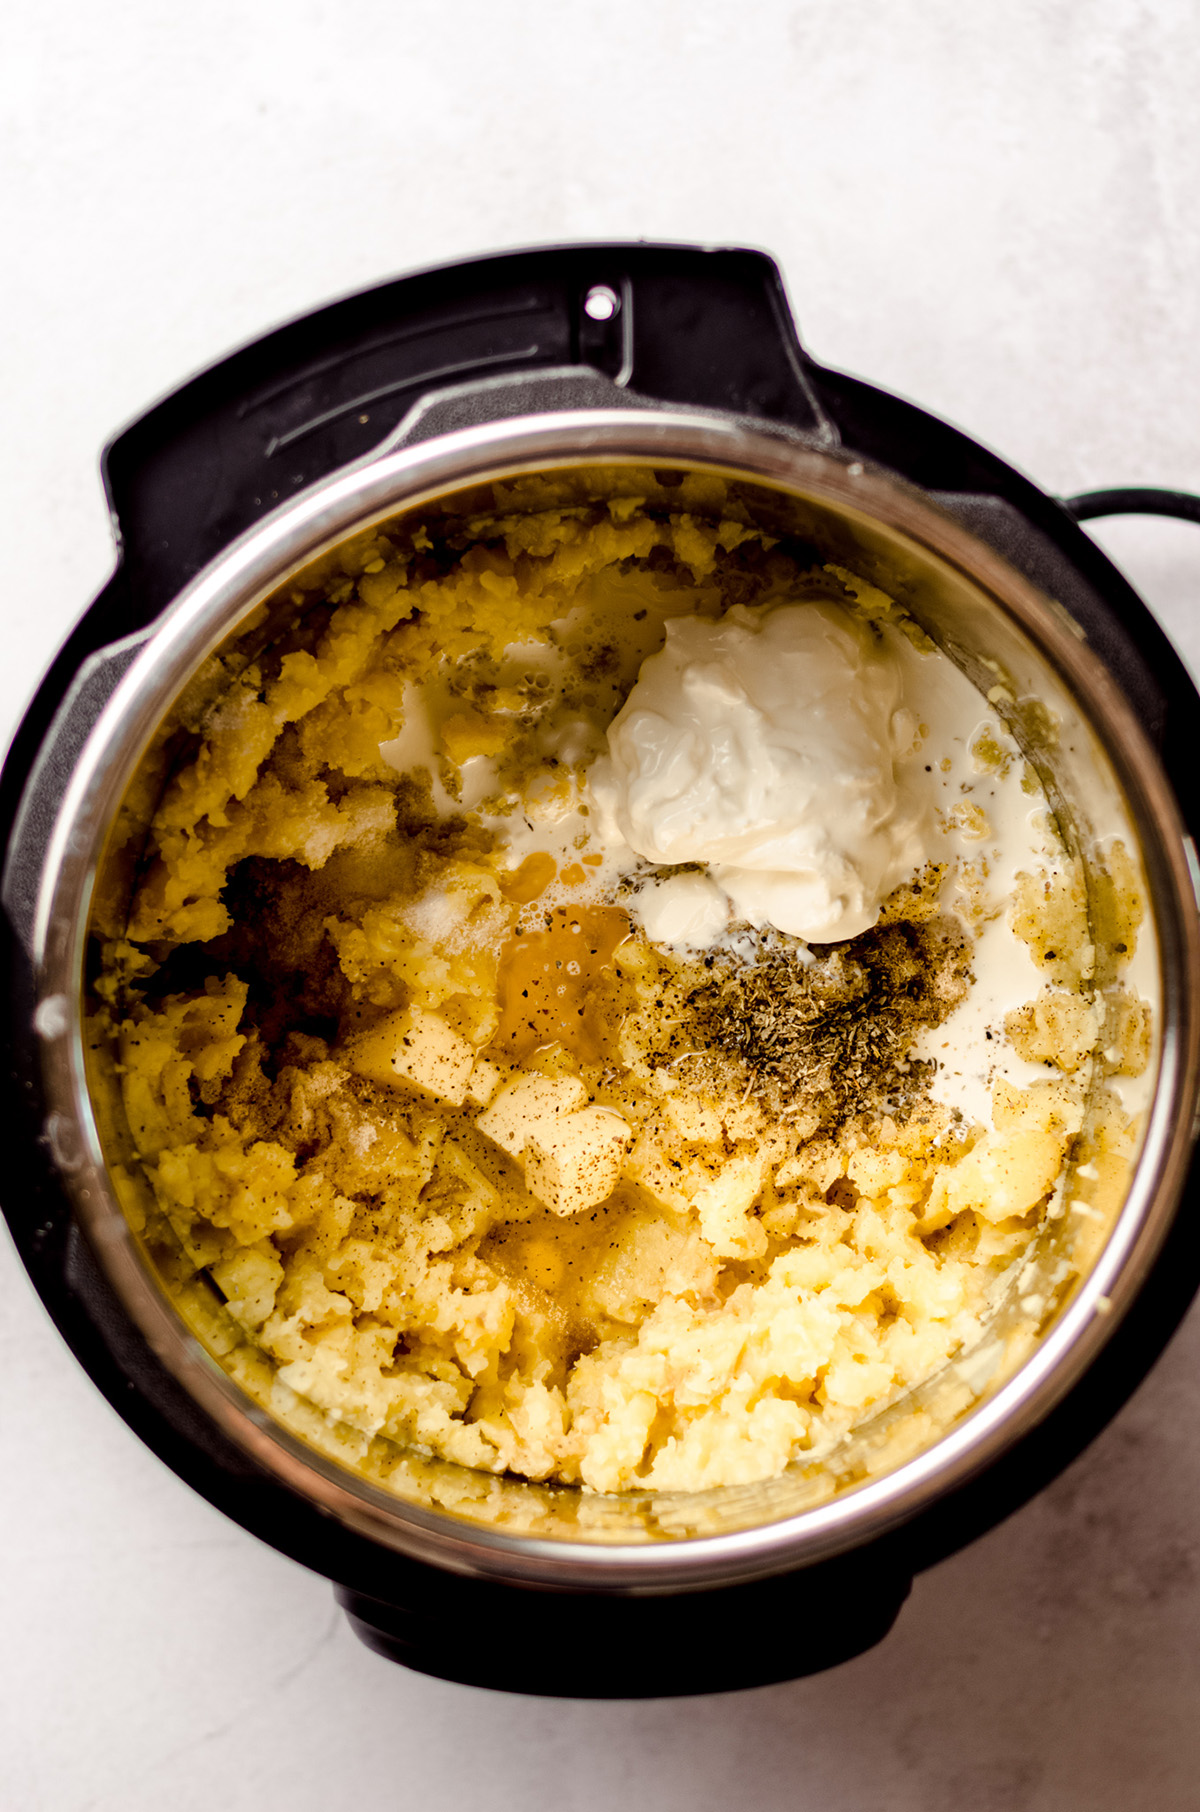 garlic mashed potatoes ingredients cooked in an instant pot